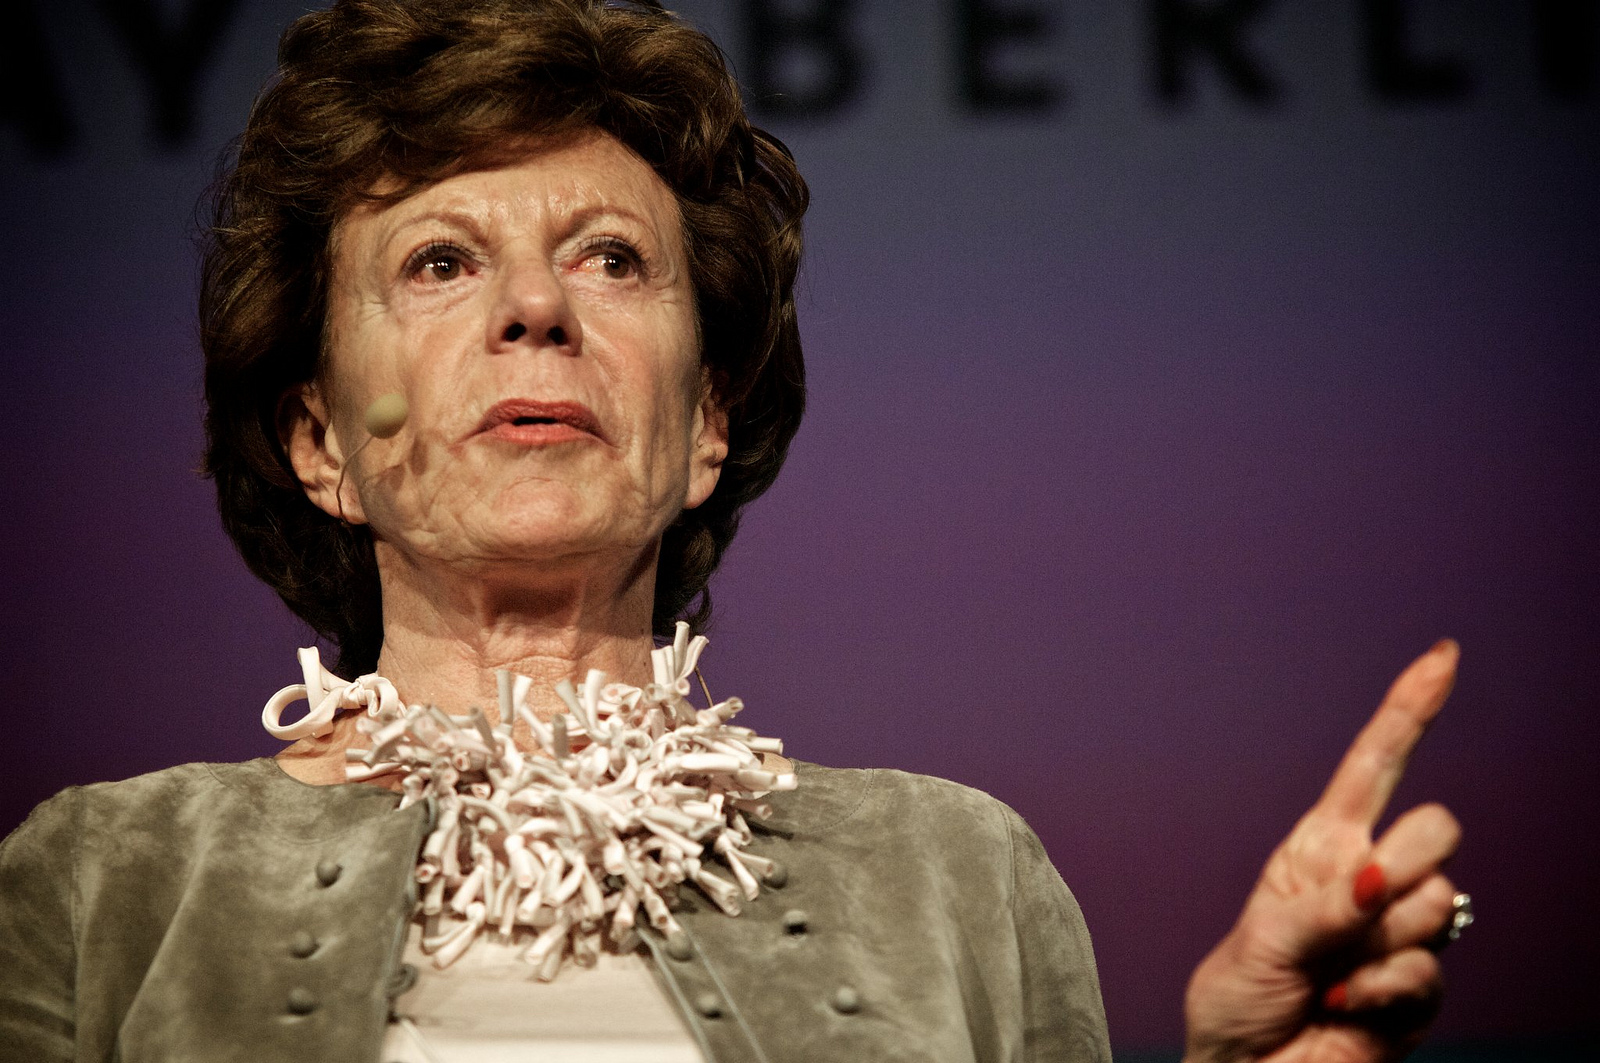 Neelie Kroes — source: Gregor Fischer